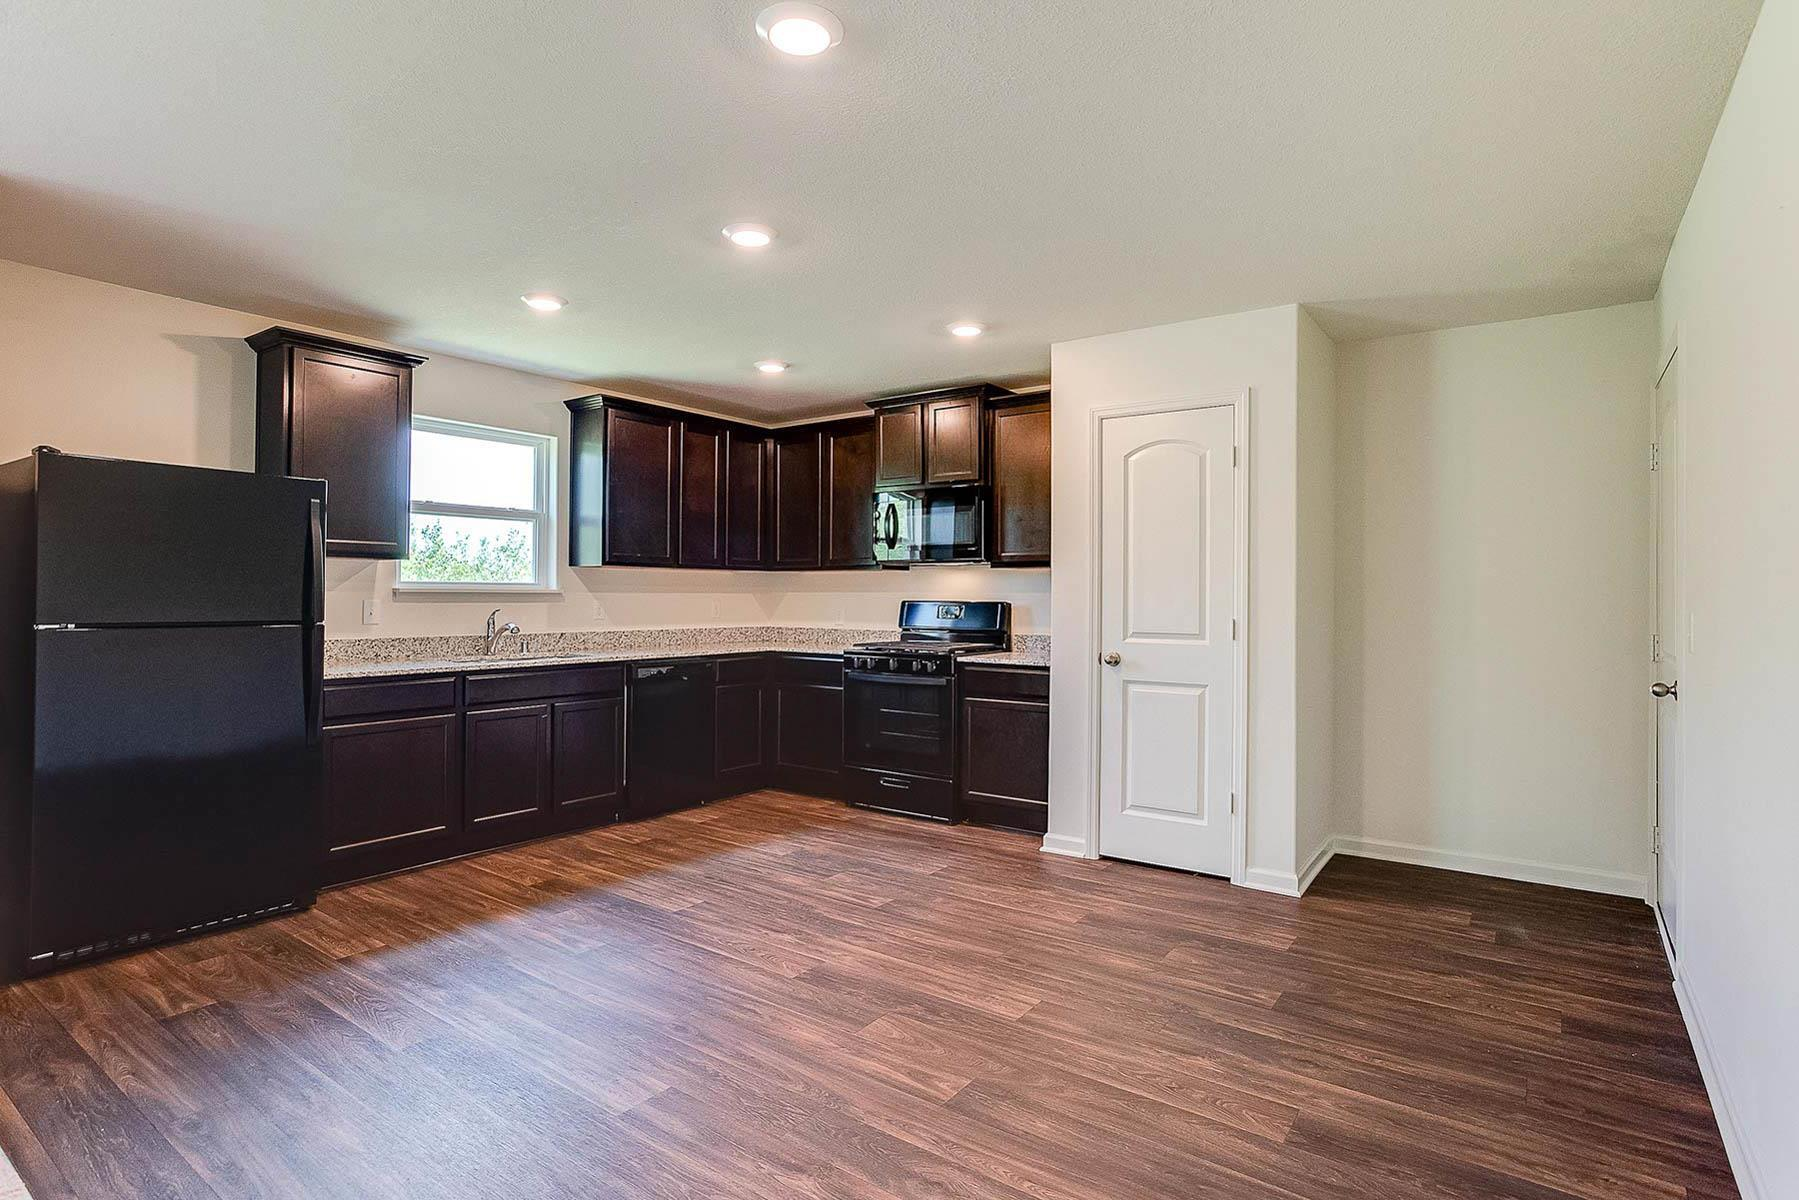 Kitchen featured in the Aitkin By LGI Homes in Minneapolis-St. Paul, MN